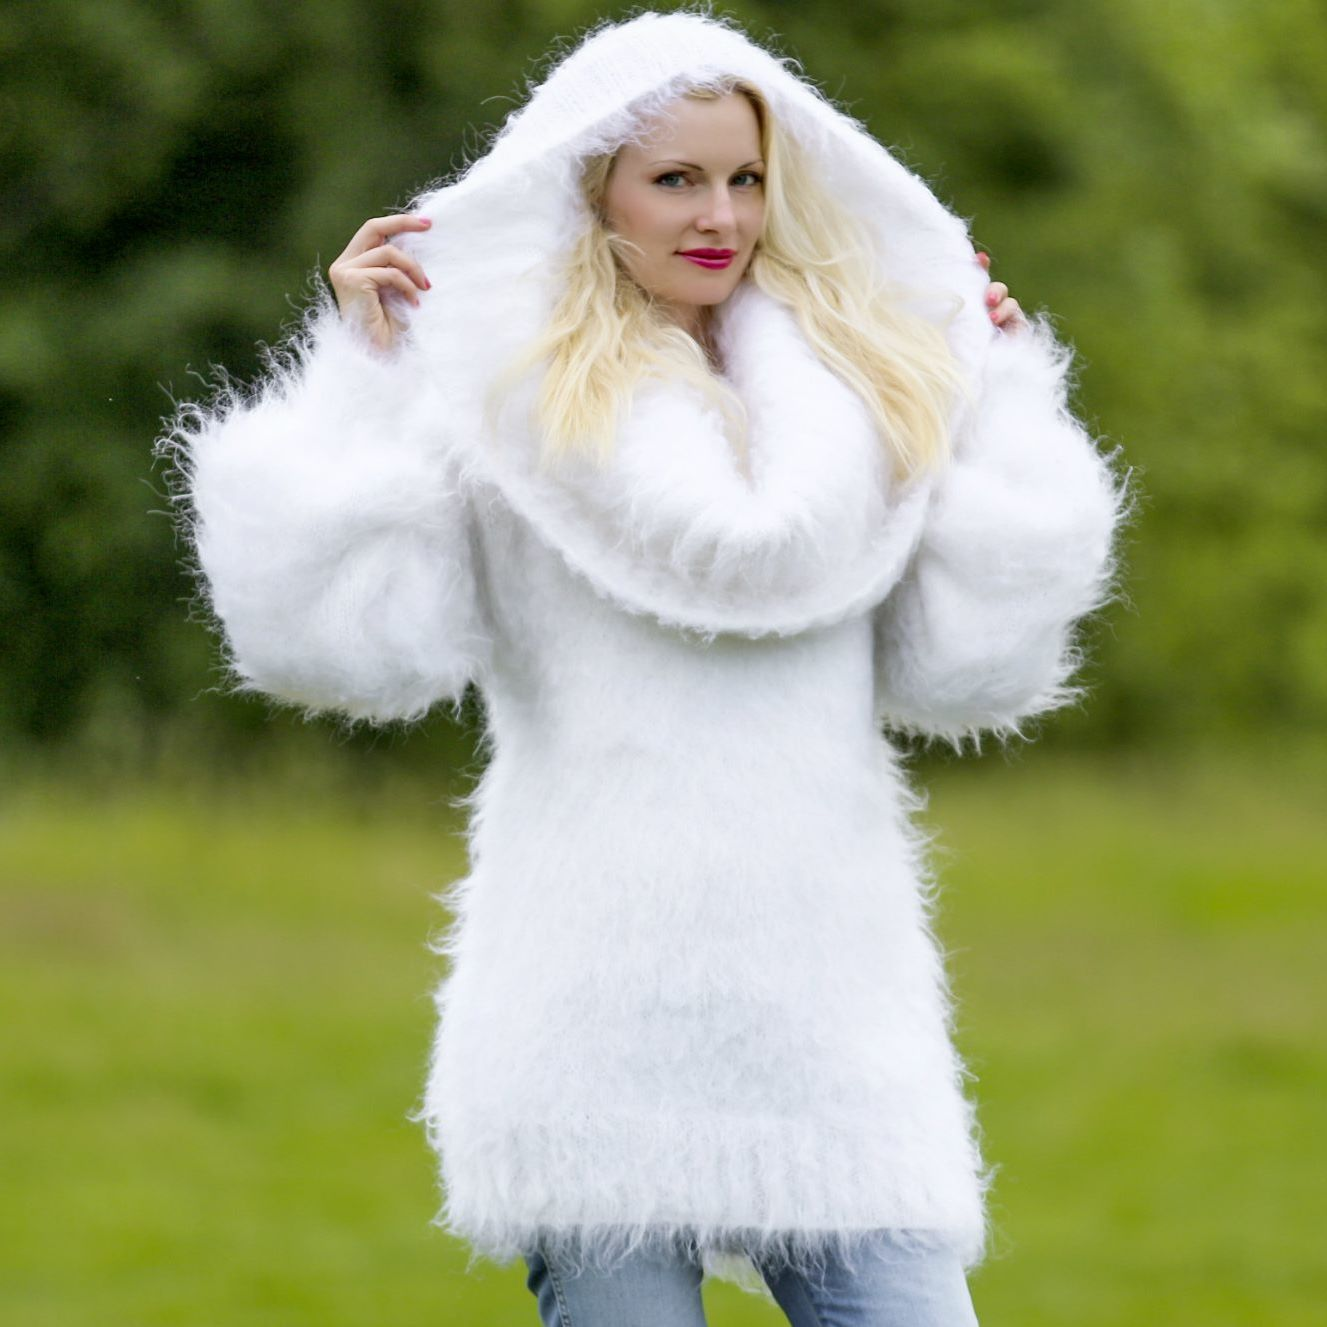 100% hand knitted fuzzy mohair sweater dress in white, size S, M ...